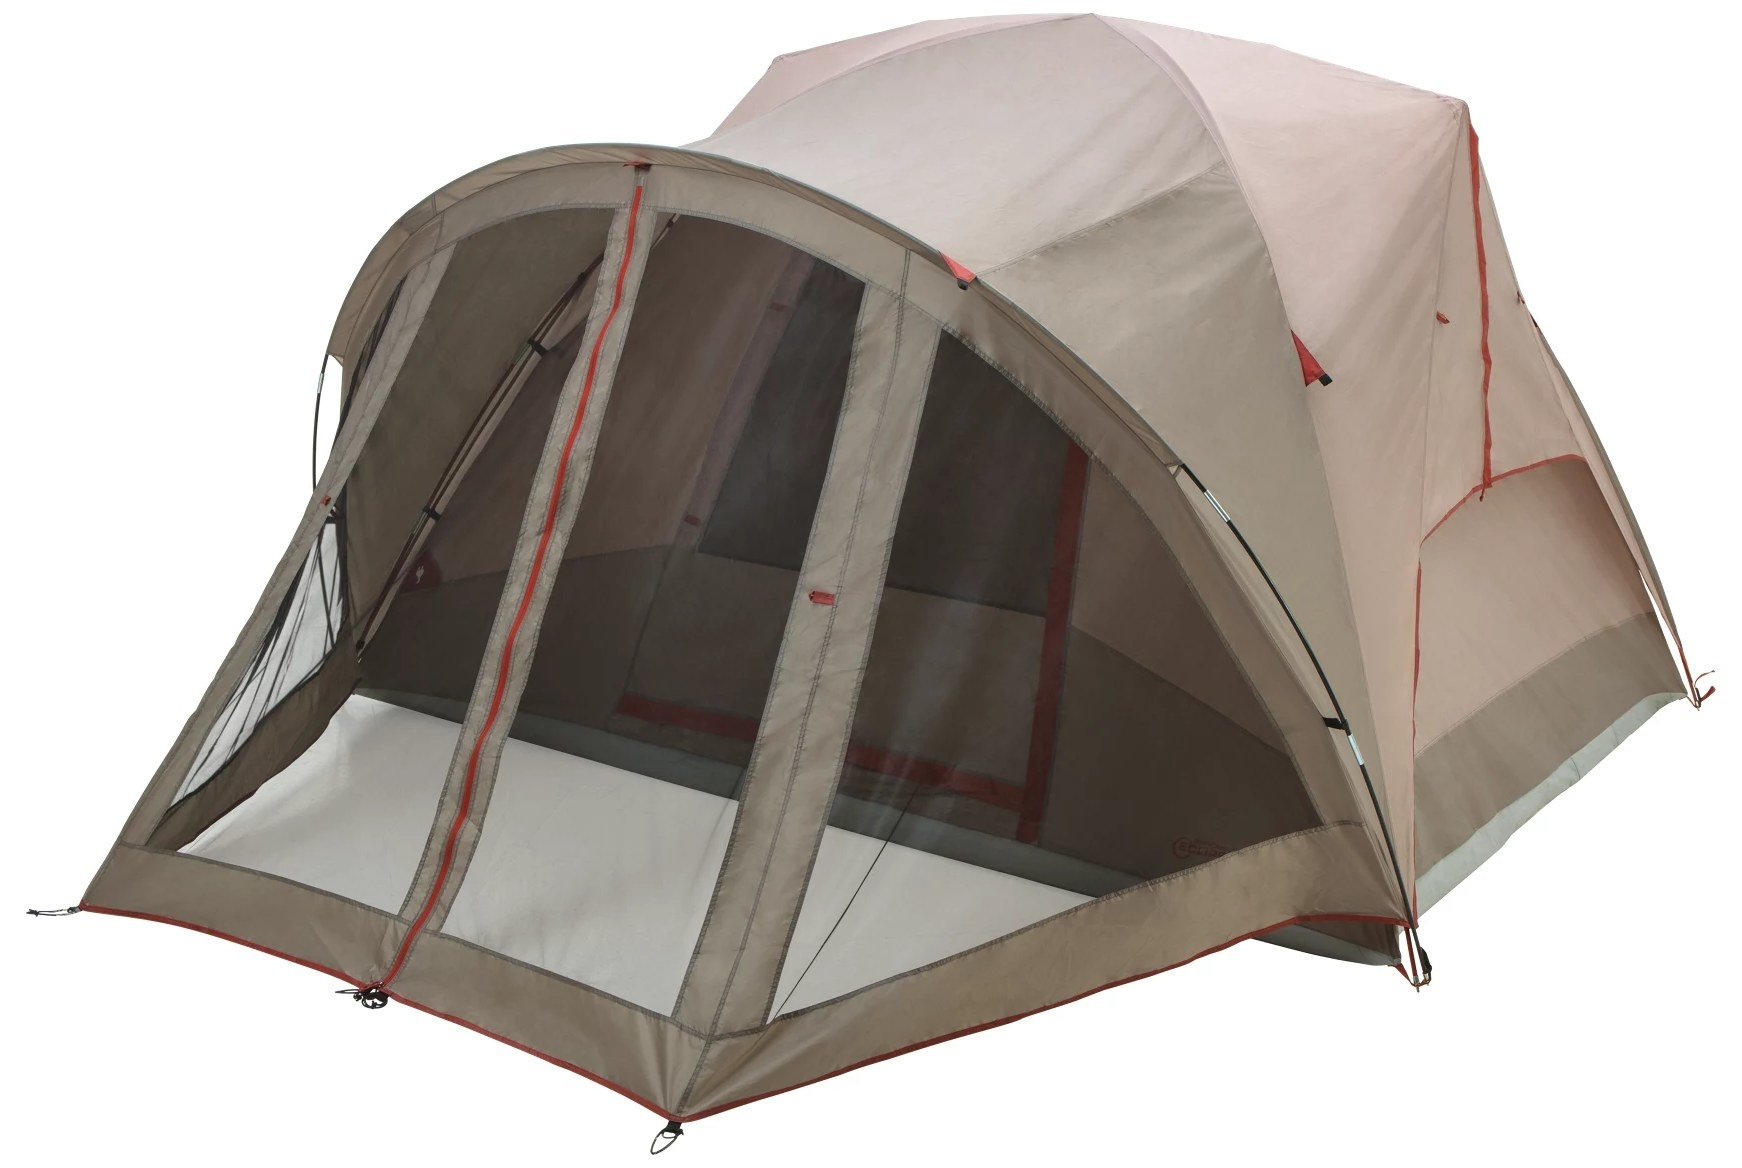 The tent with the screen porch extended